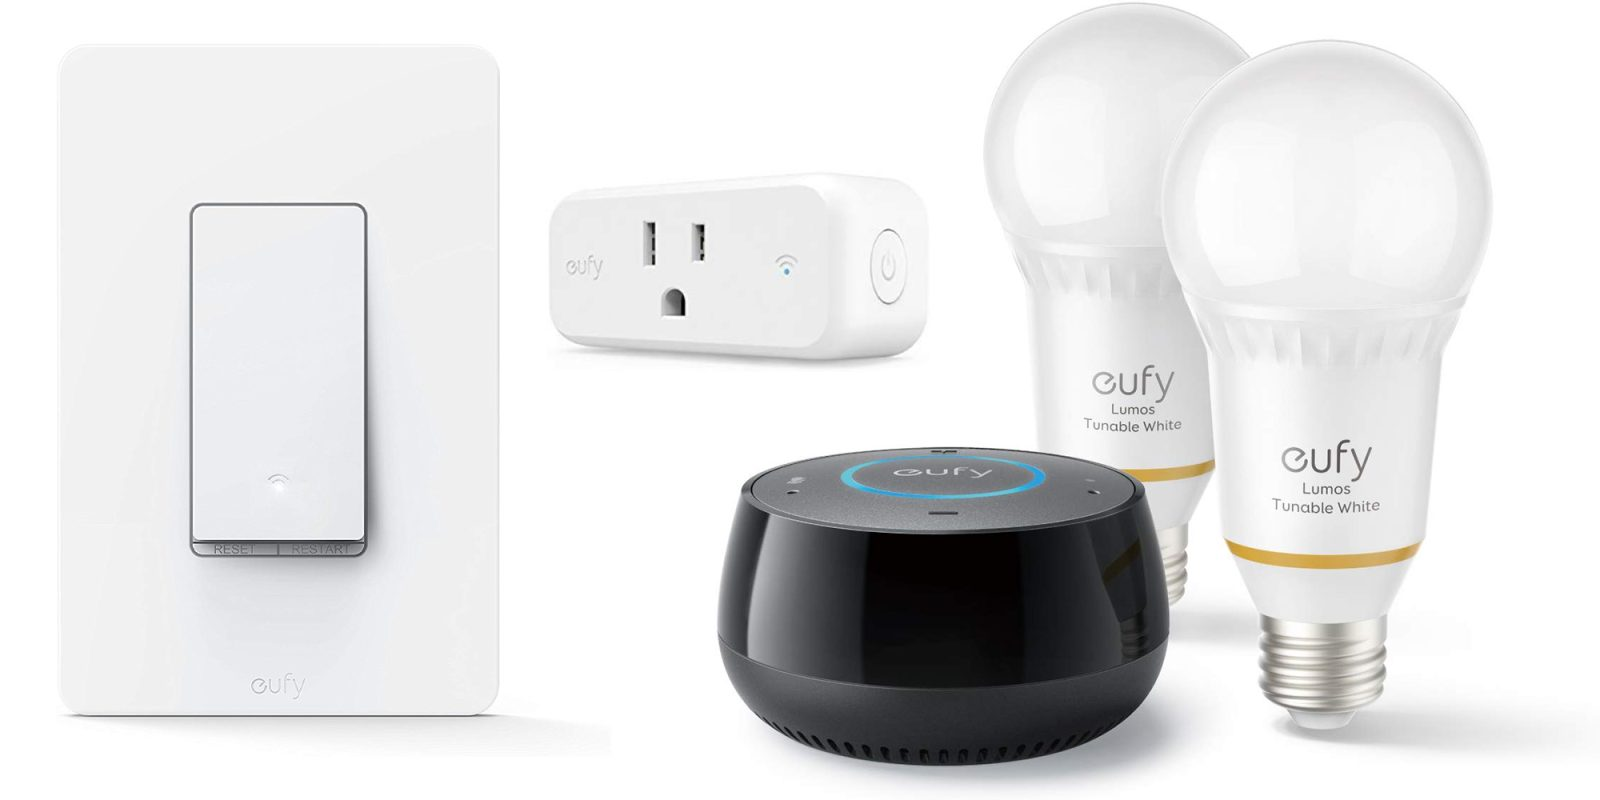 Anker's budget-friendly smart home gear on sale from $9.50